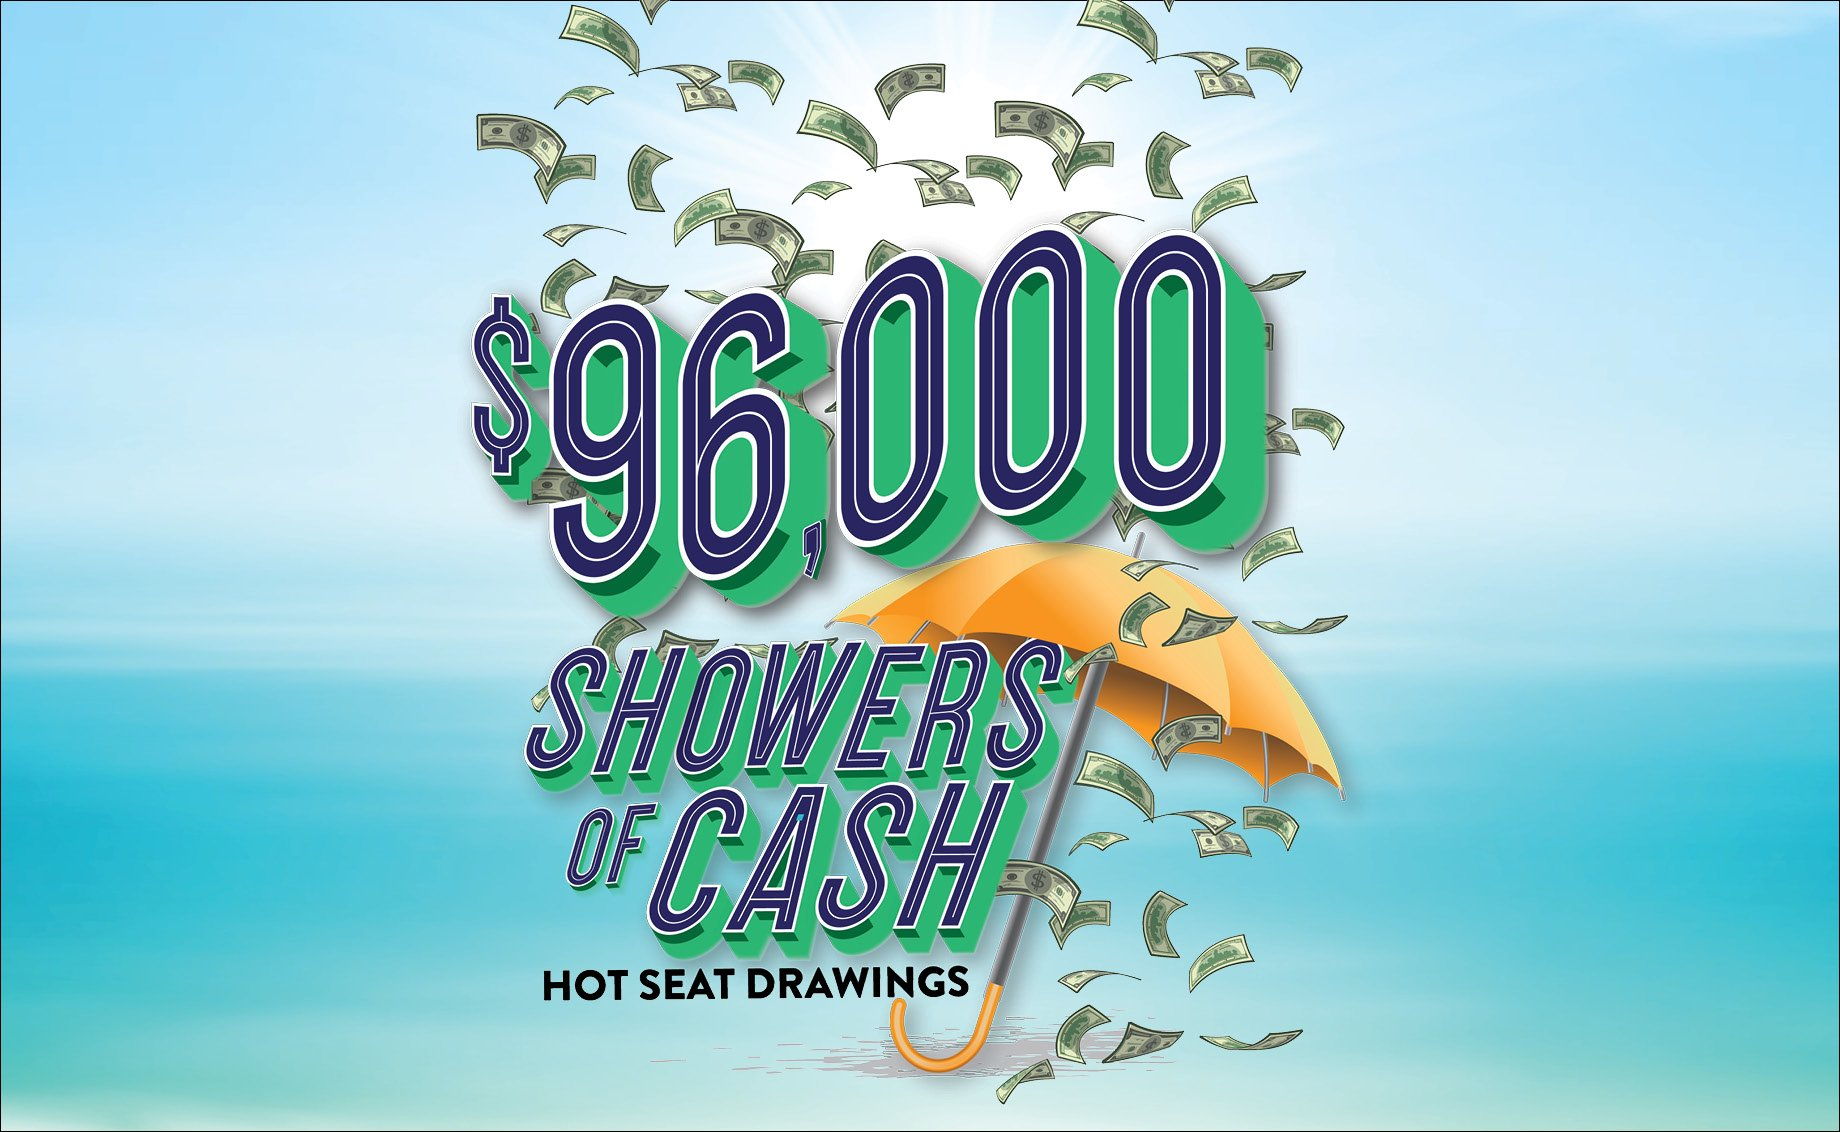 $96,000 Showers of Cash Hot Seat Drawings